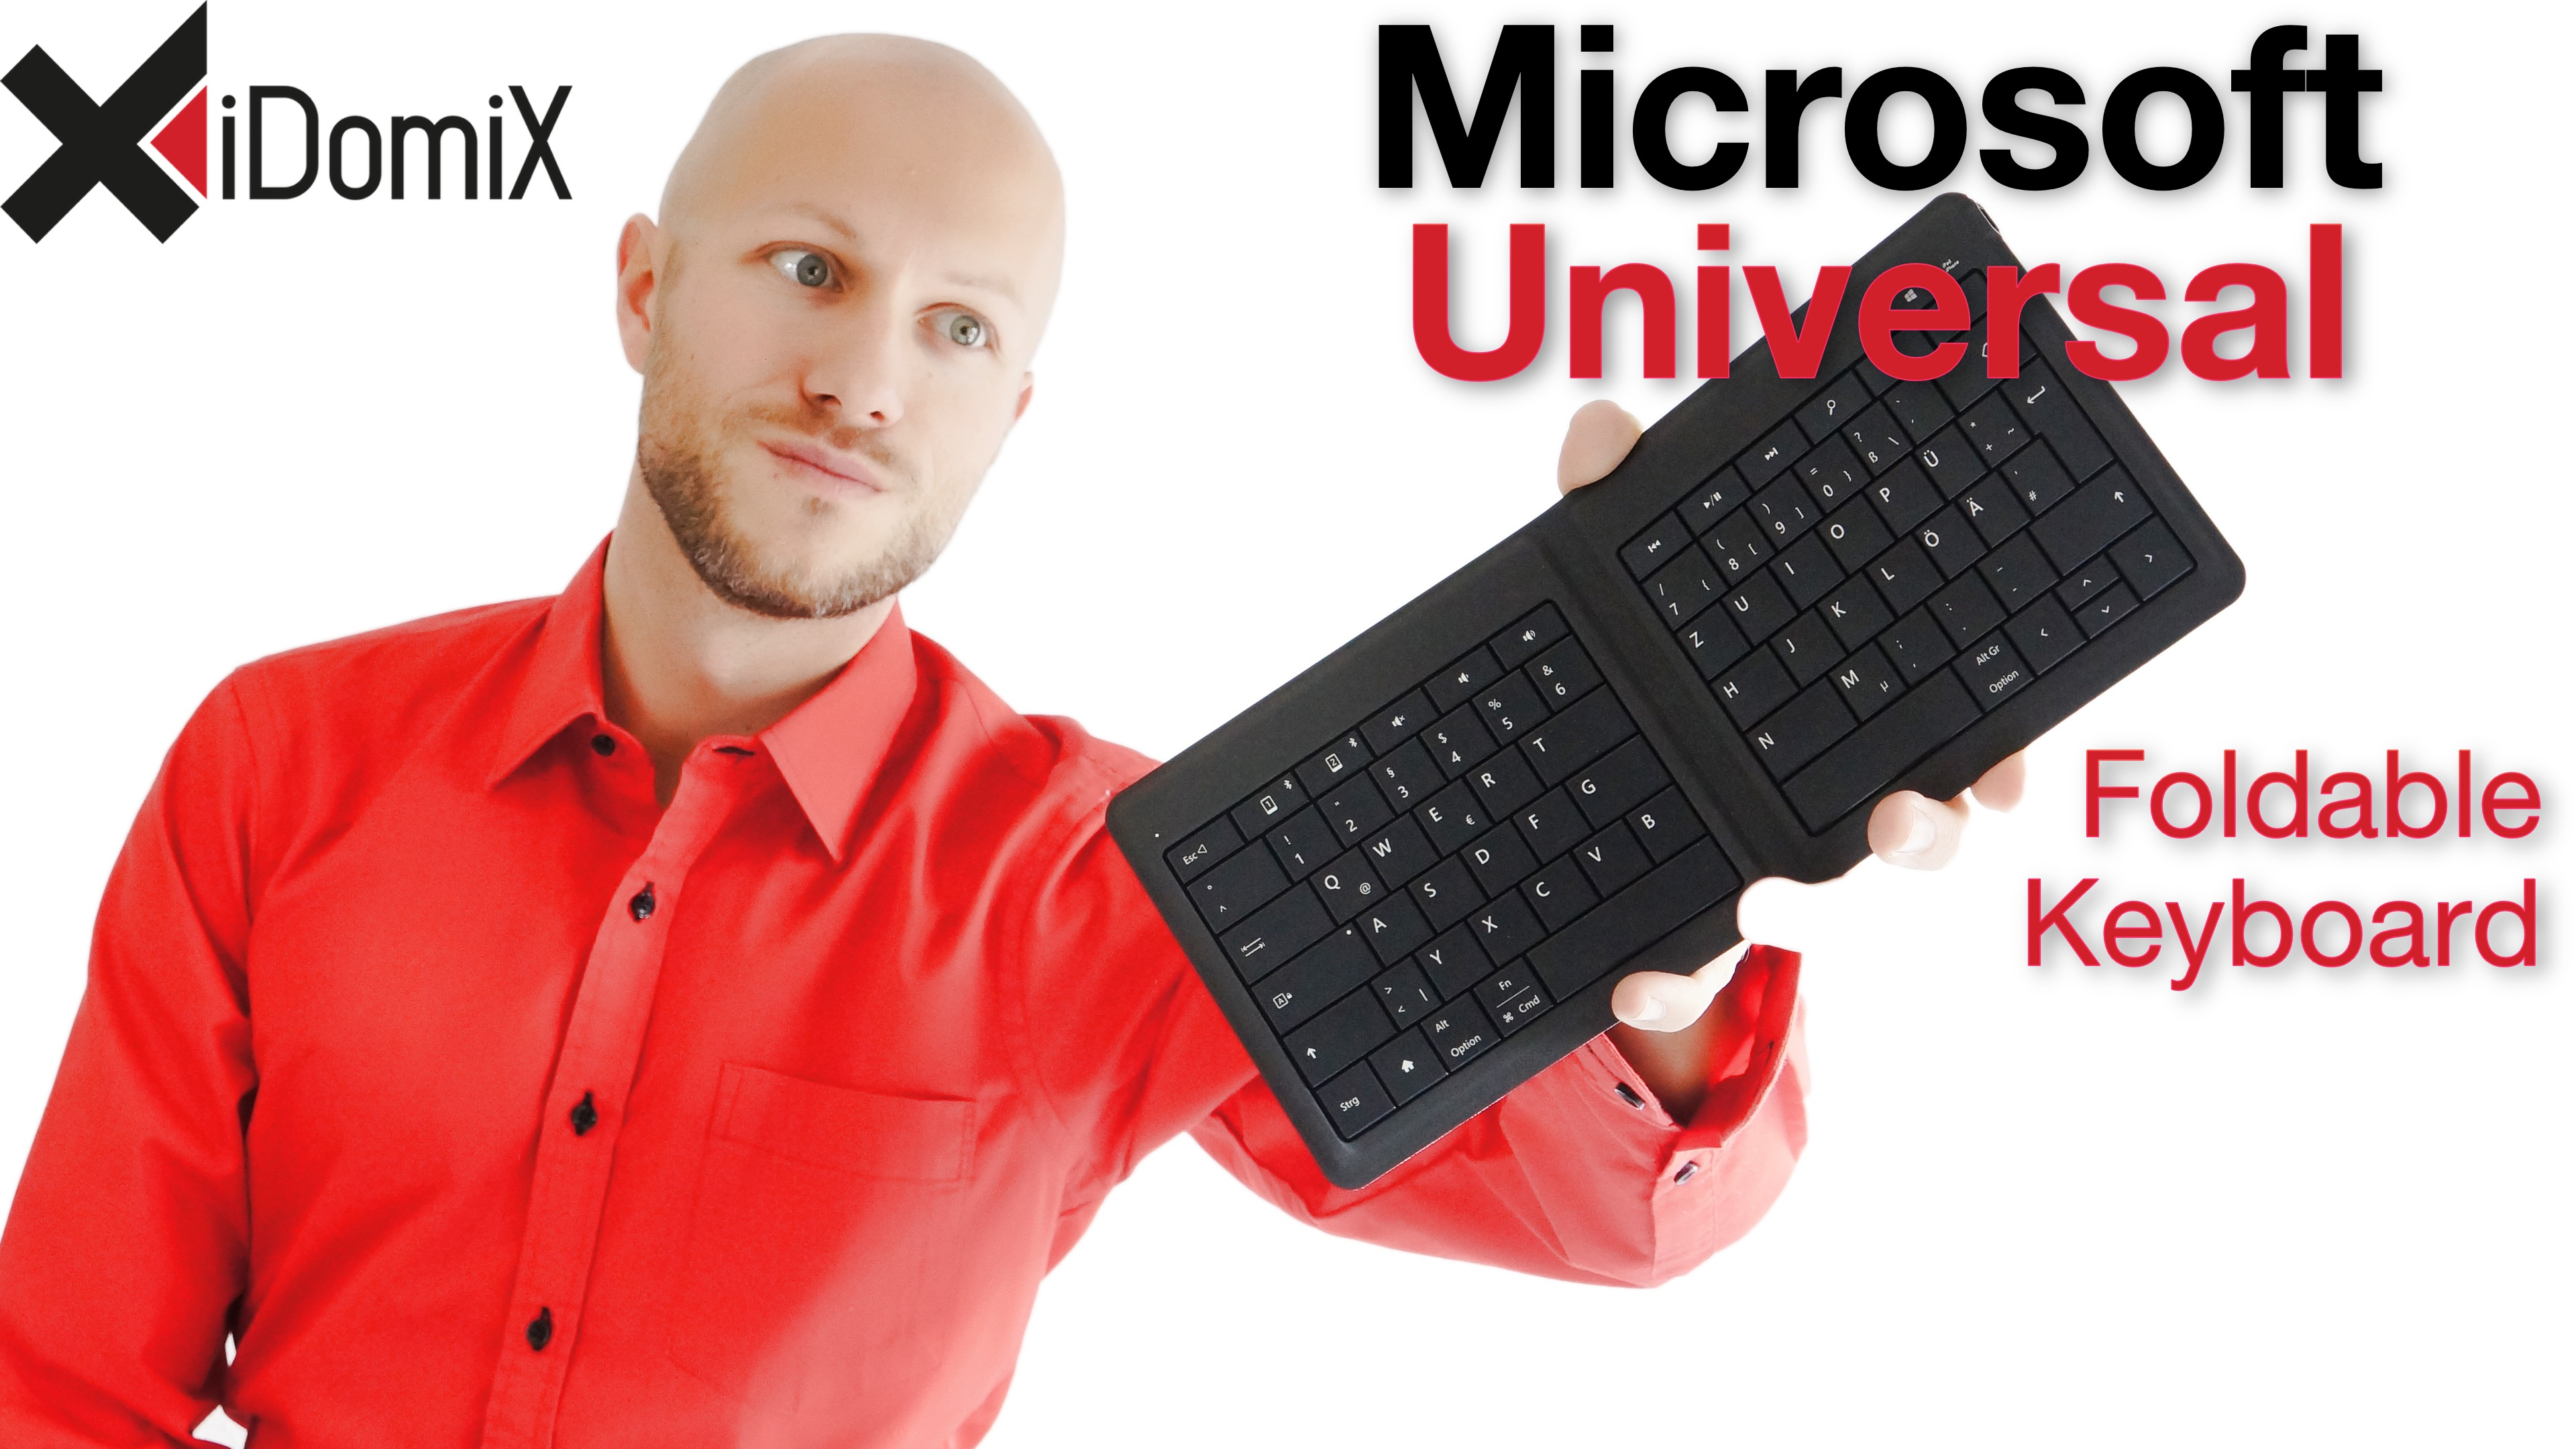 Microsoft Universal Foldable Keyboard Review